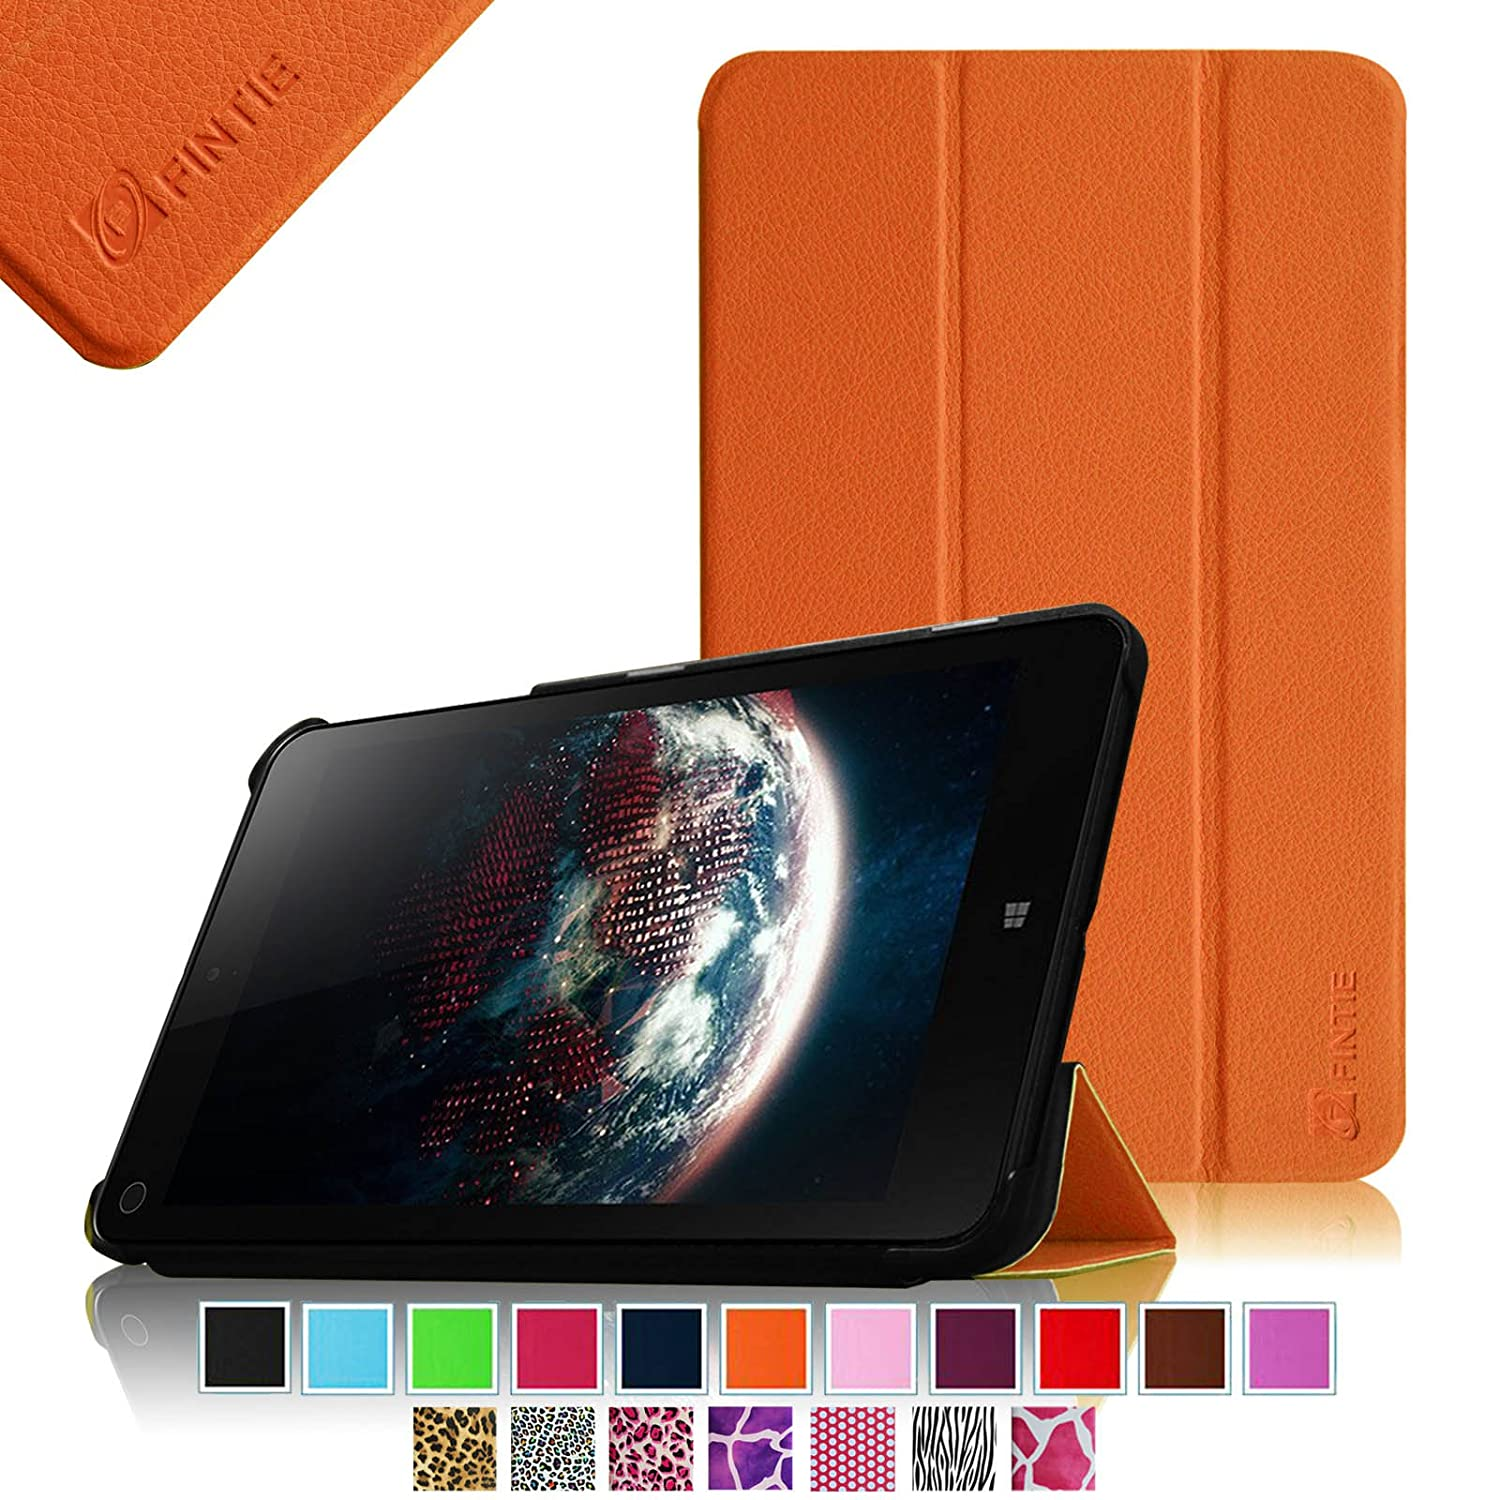 Фото Fintie Lenovo IdeaTab Miix 2 8 Smart Shell Case - Ultra Slim Cover for Lenovo Miix 2 8 Inch Tablet Windows 8.1 genuine leather for lenovo miix 720 case cover ideapad miix720 protective smart tablet 5 pro protector sleeve cowhide